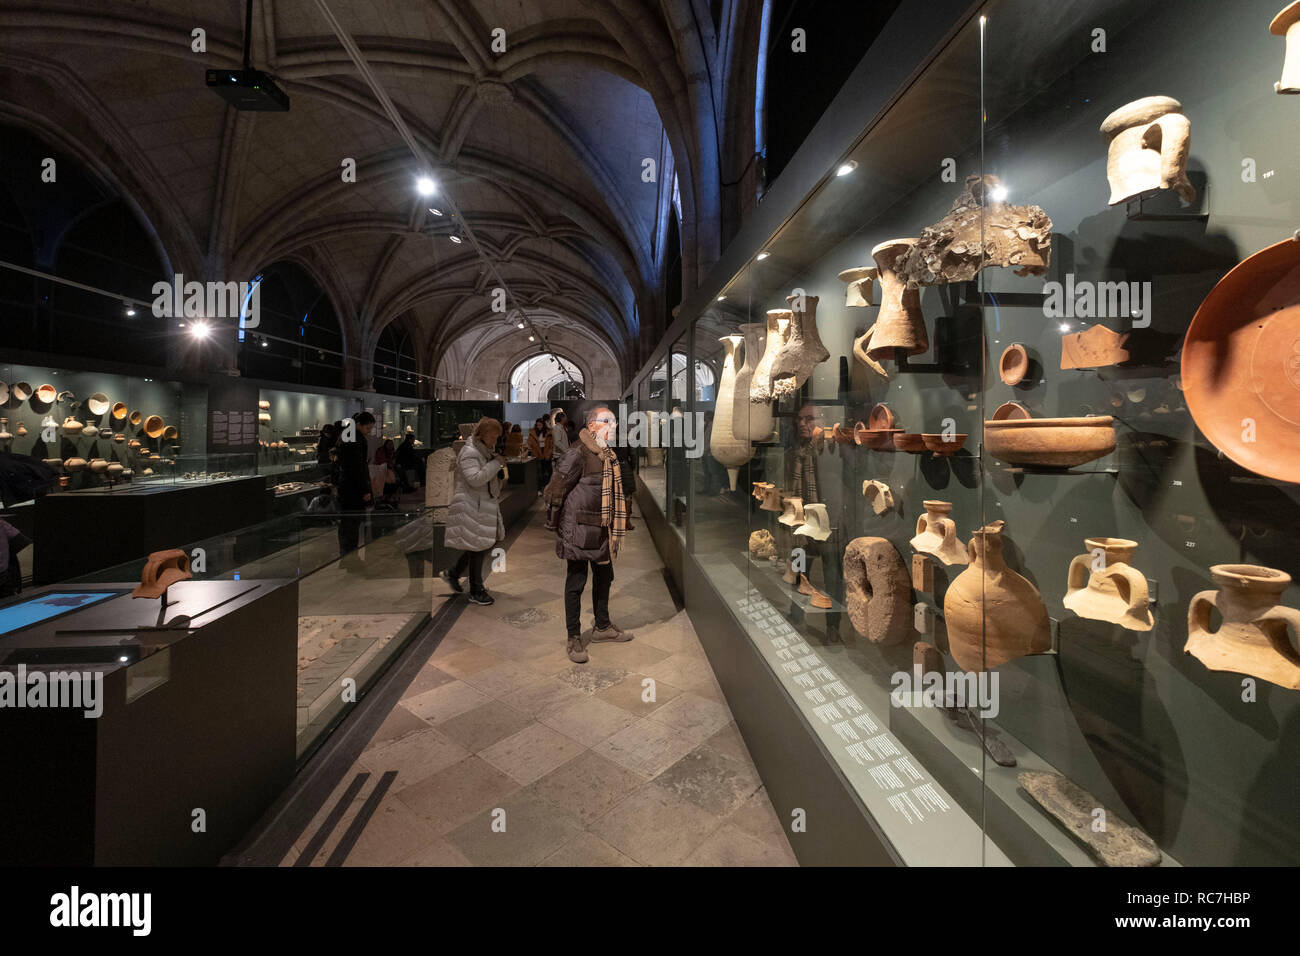 National Archaeology Museum in Lisbon, Portugal, Europe - Stock Image